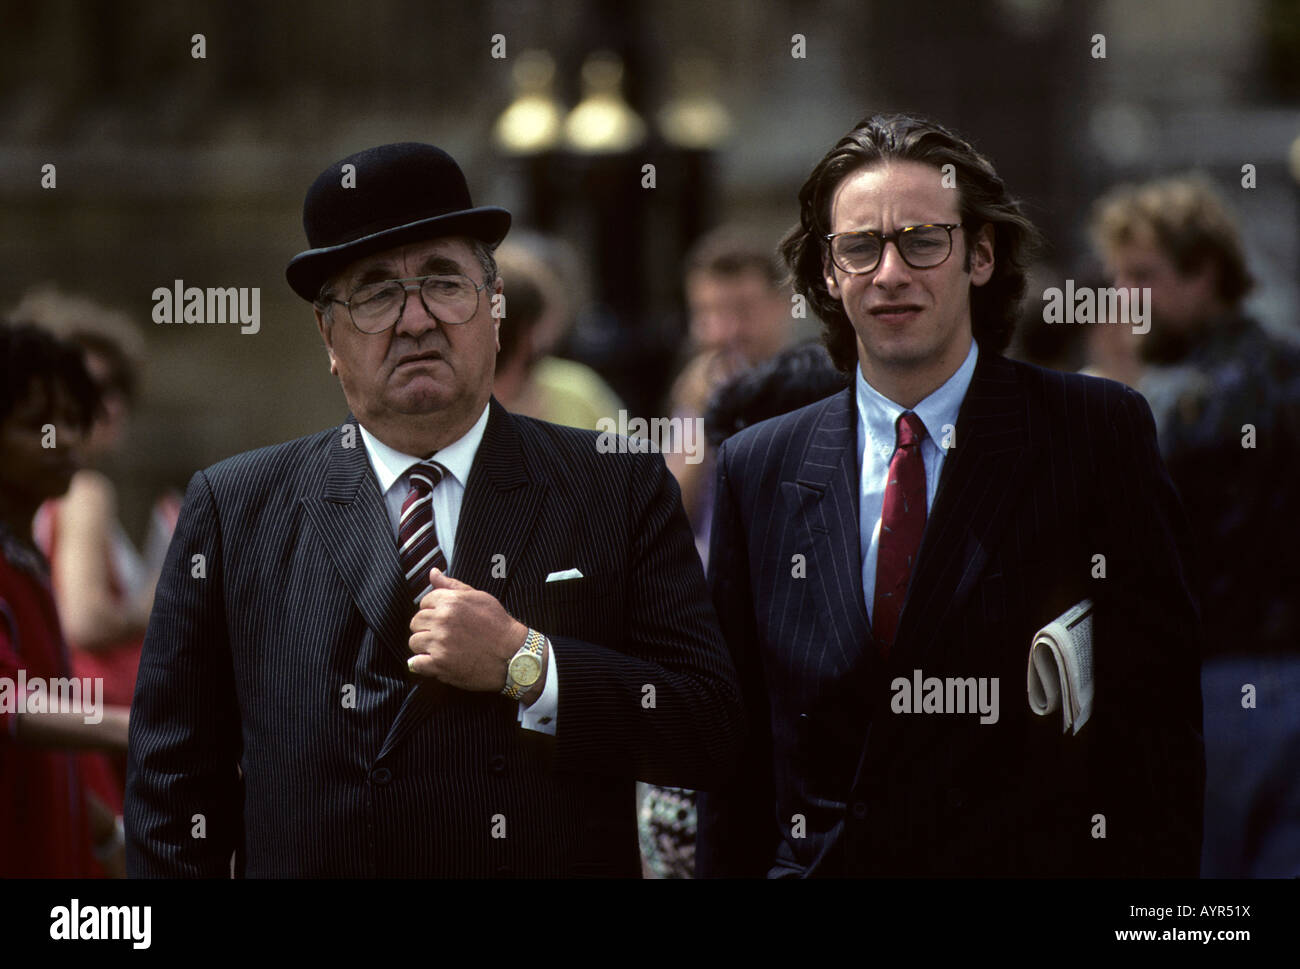 cc120820017 Older man wearing bowler hat and young man wearing pin-striped suit with  newspaper under